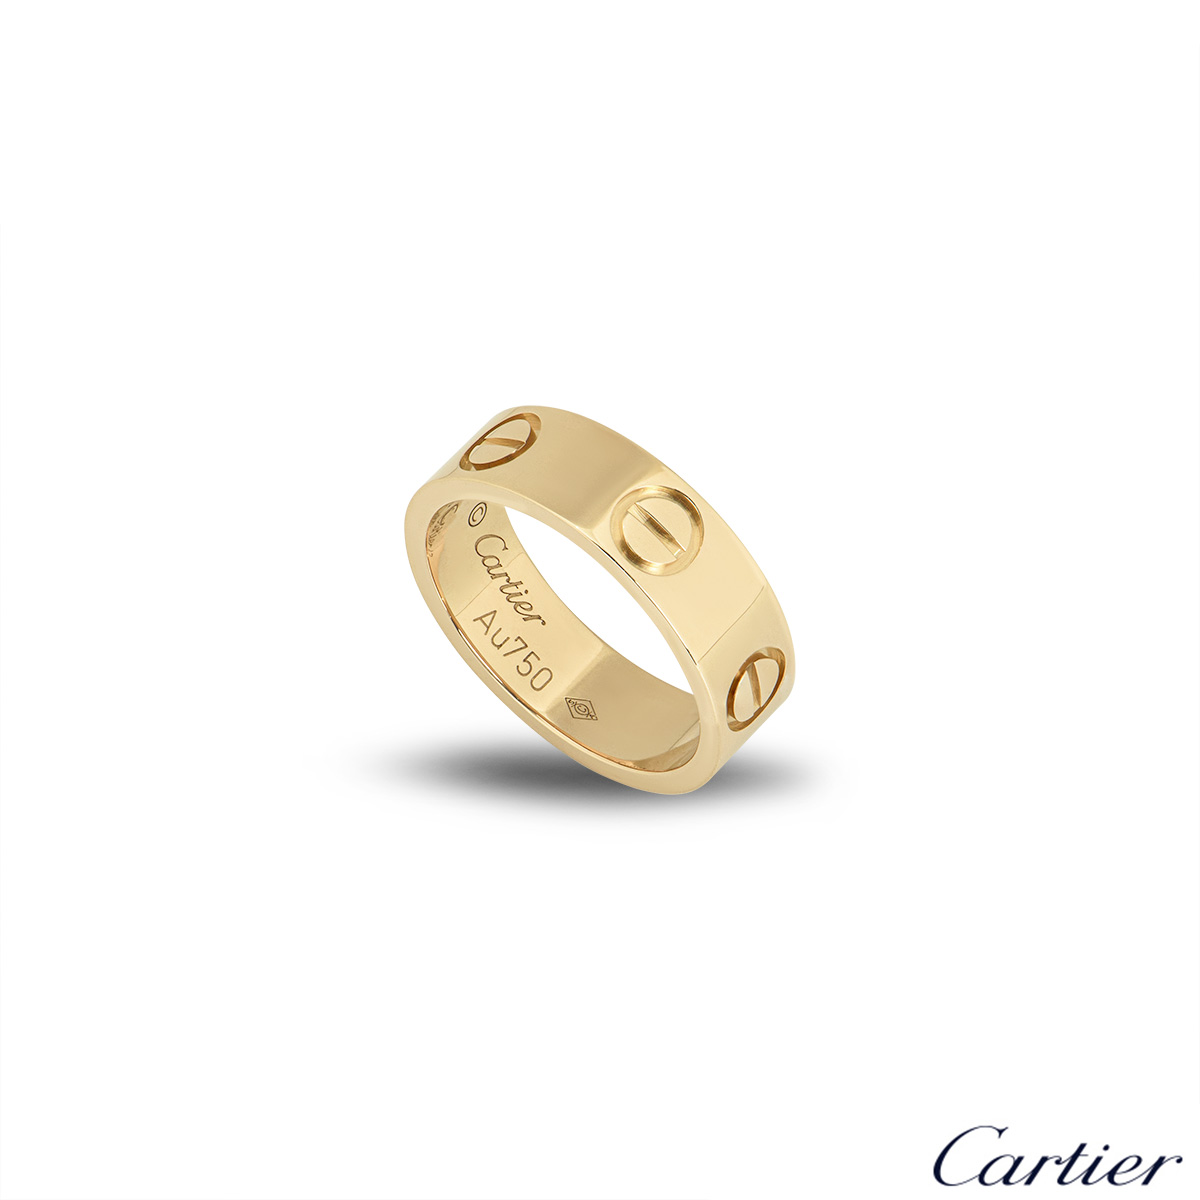 Cartier Yellow Gold Love Ring Size 55 B4084600